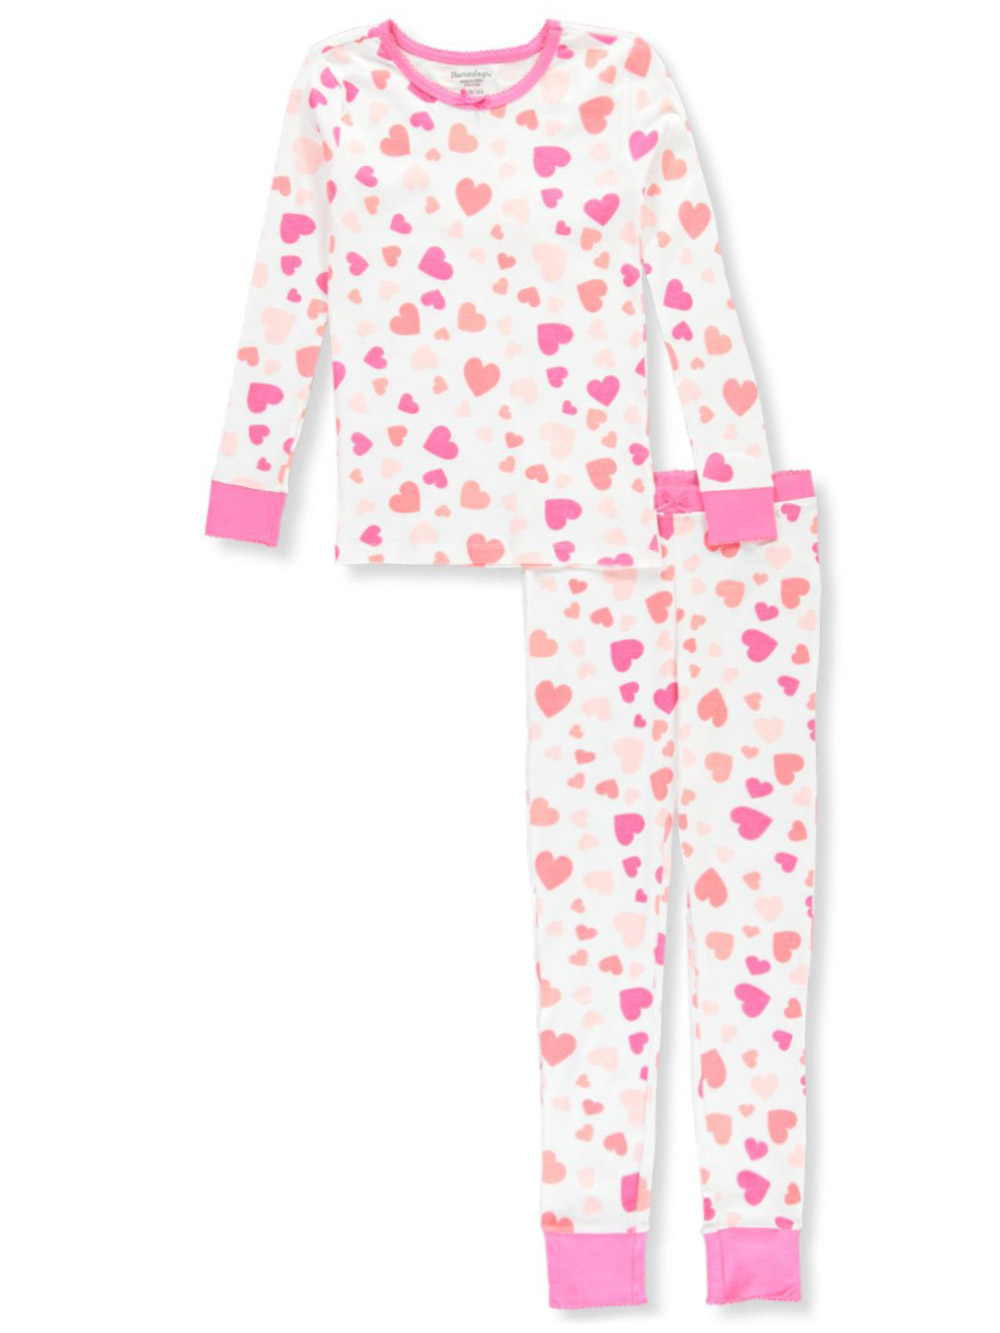 THERMAL KNIT PAJAMA SET features Pink Hearts fits American Girl